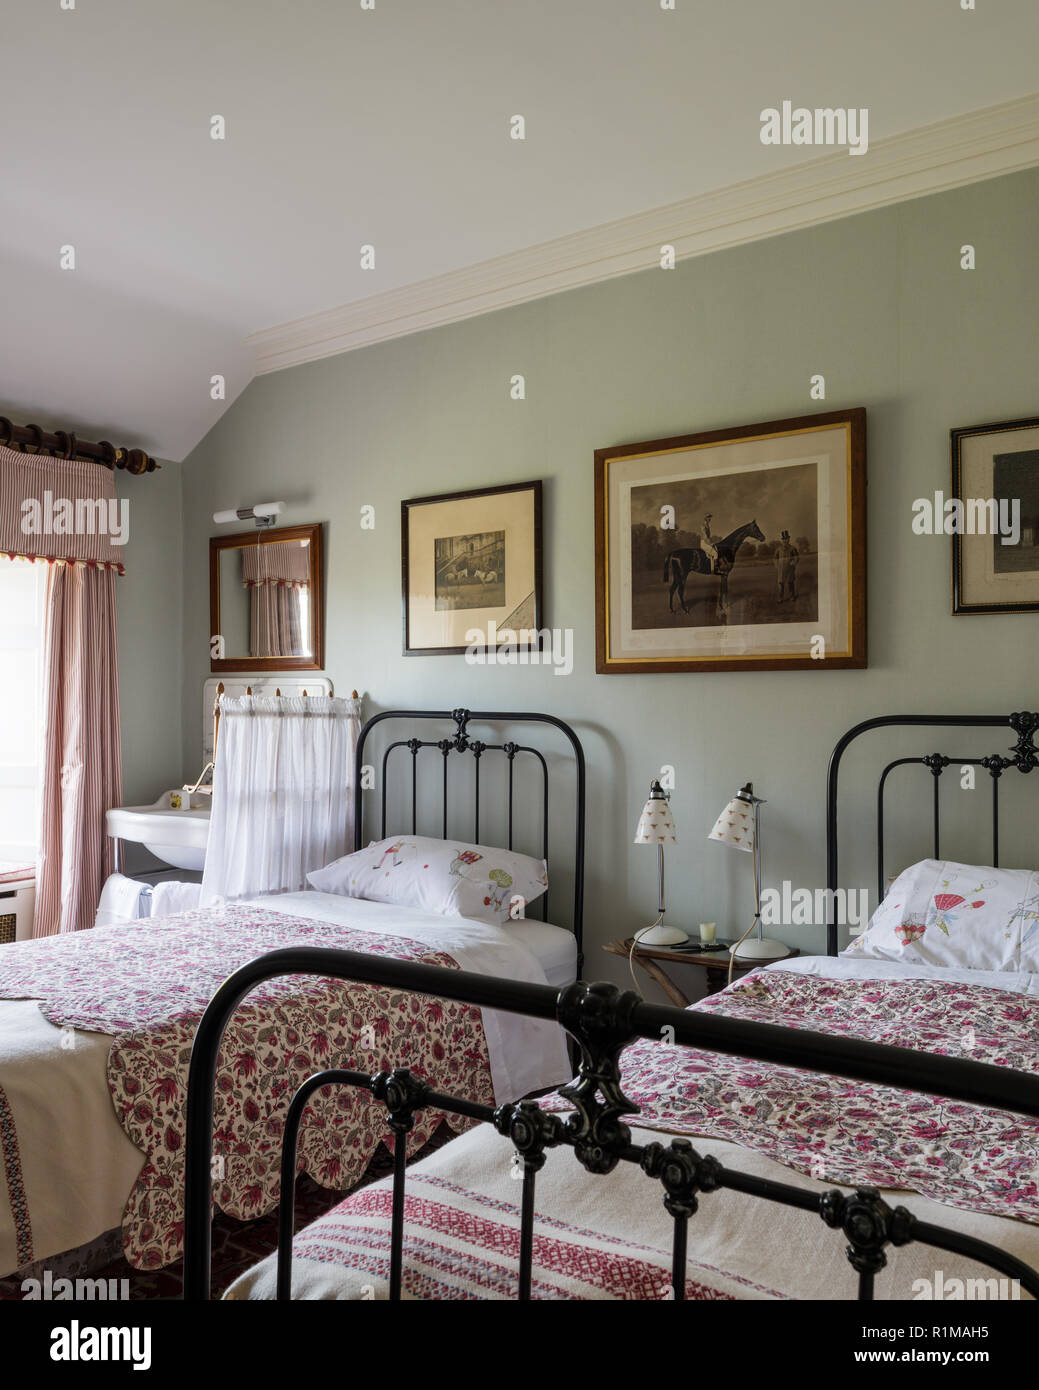 Old Fashioned Beds Photos Old Fashioned Beds Images Alamy